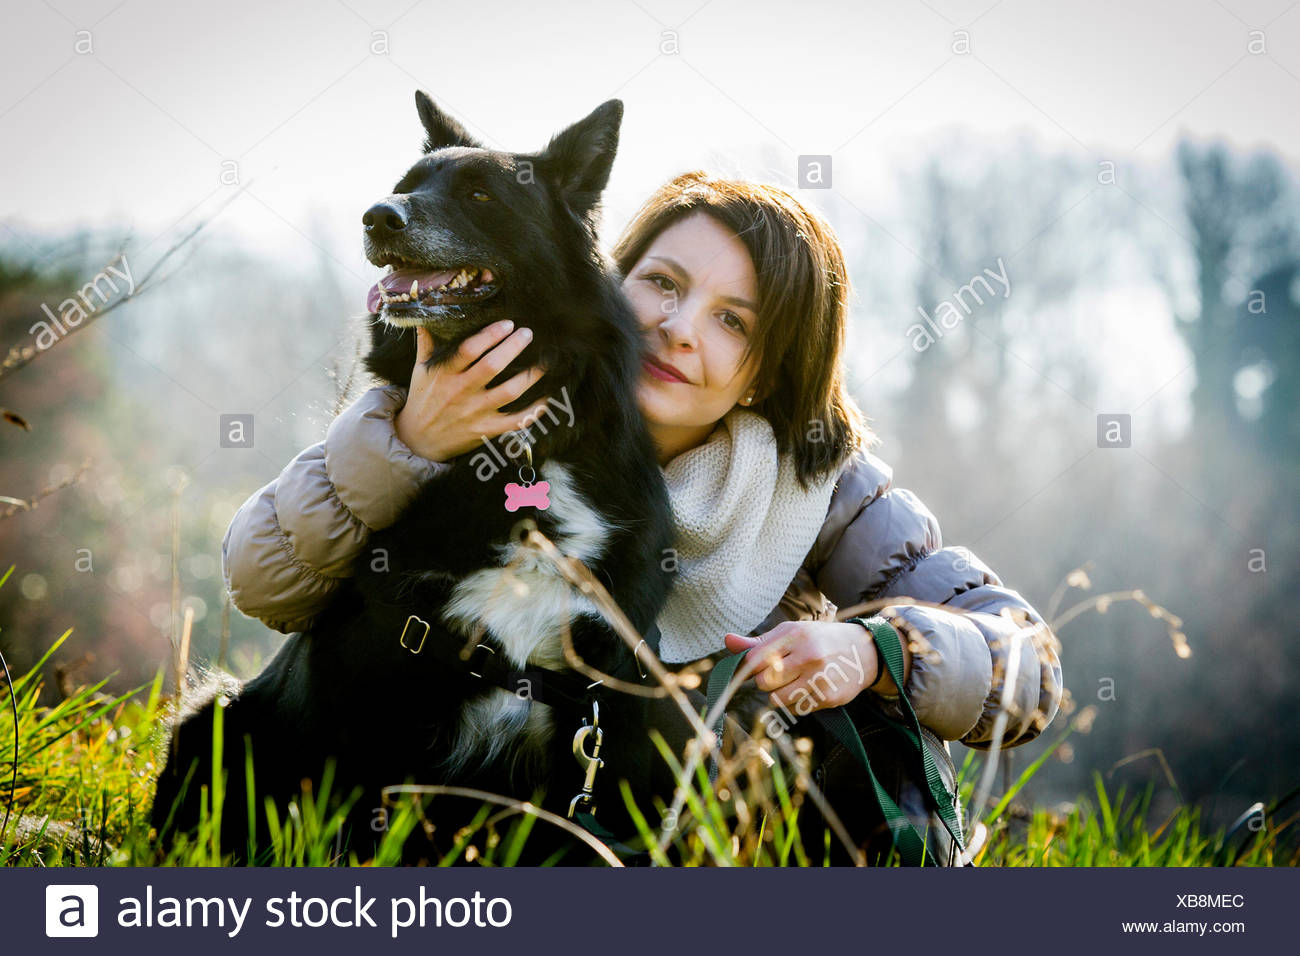 Portrait of mid adult woman with arm around her dog in field - Stock Image